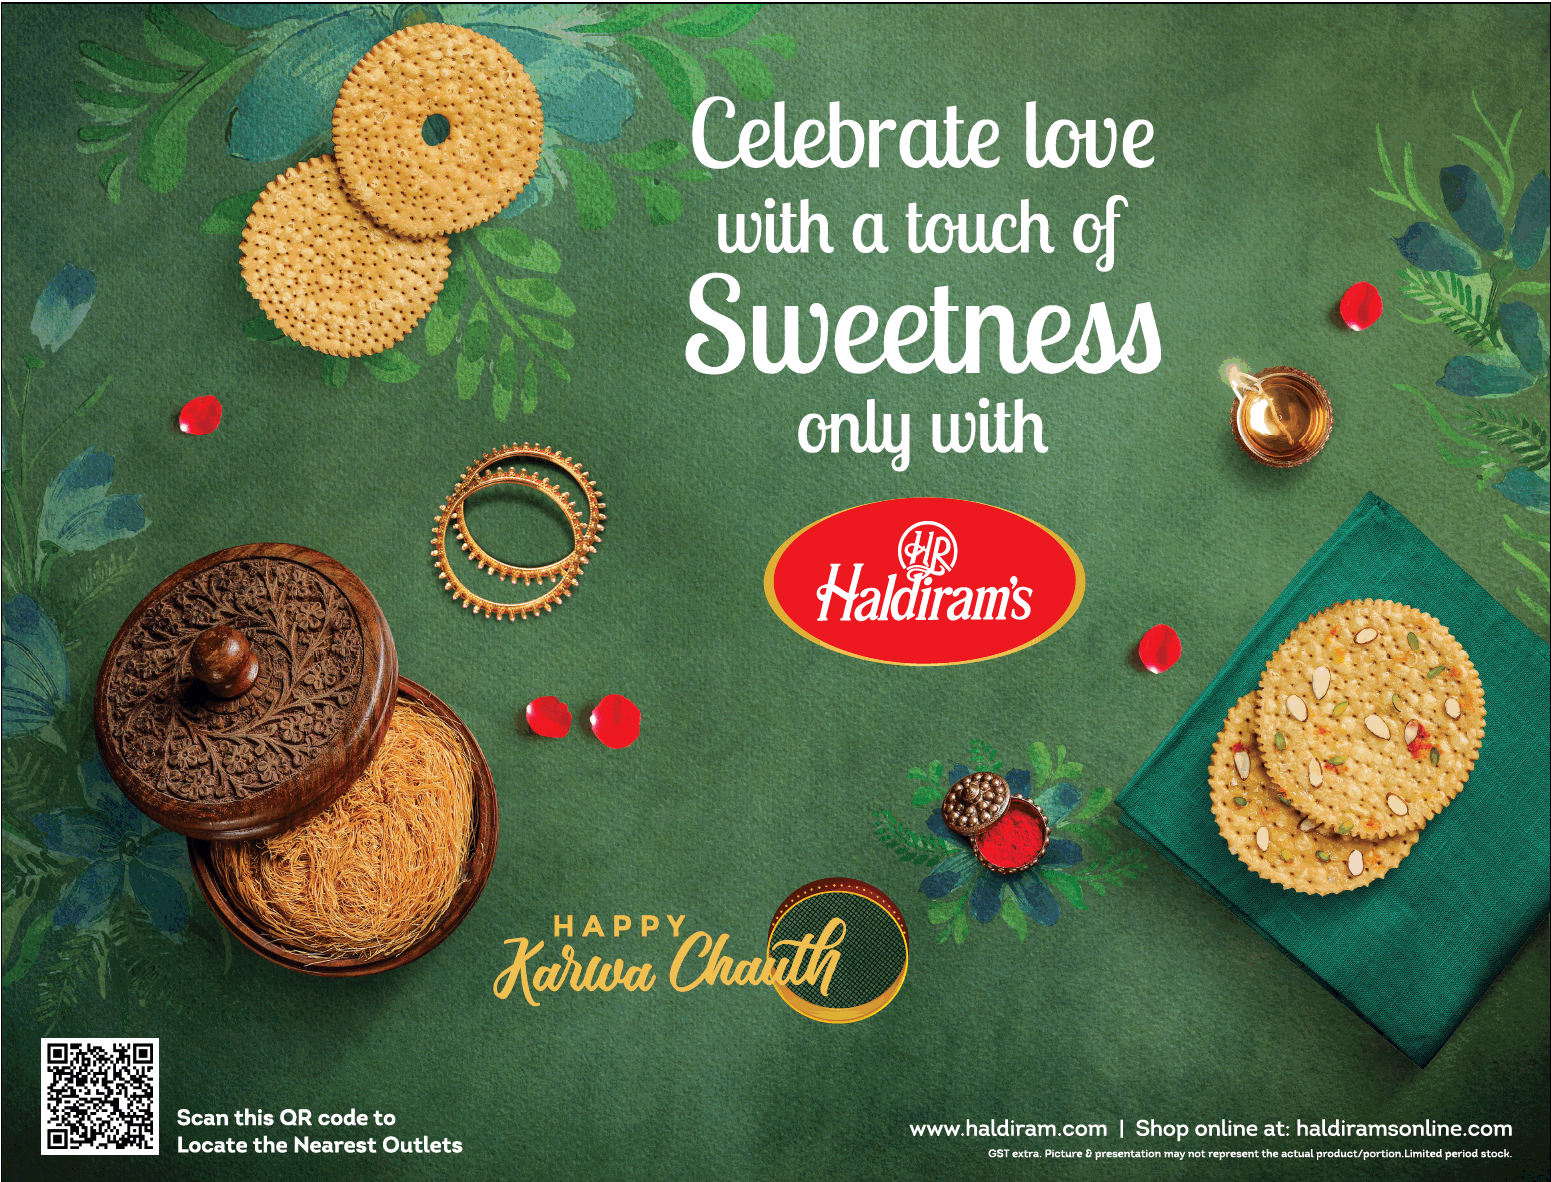 haldirams-celebrate-love-with-a-touch-of-sweetness-happy-karwa-chauth-ad-delhi-times-31-10-2020